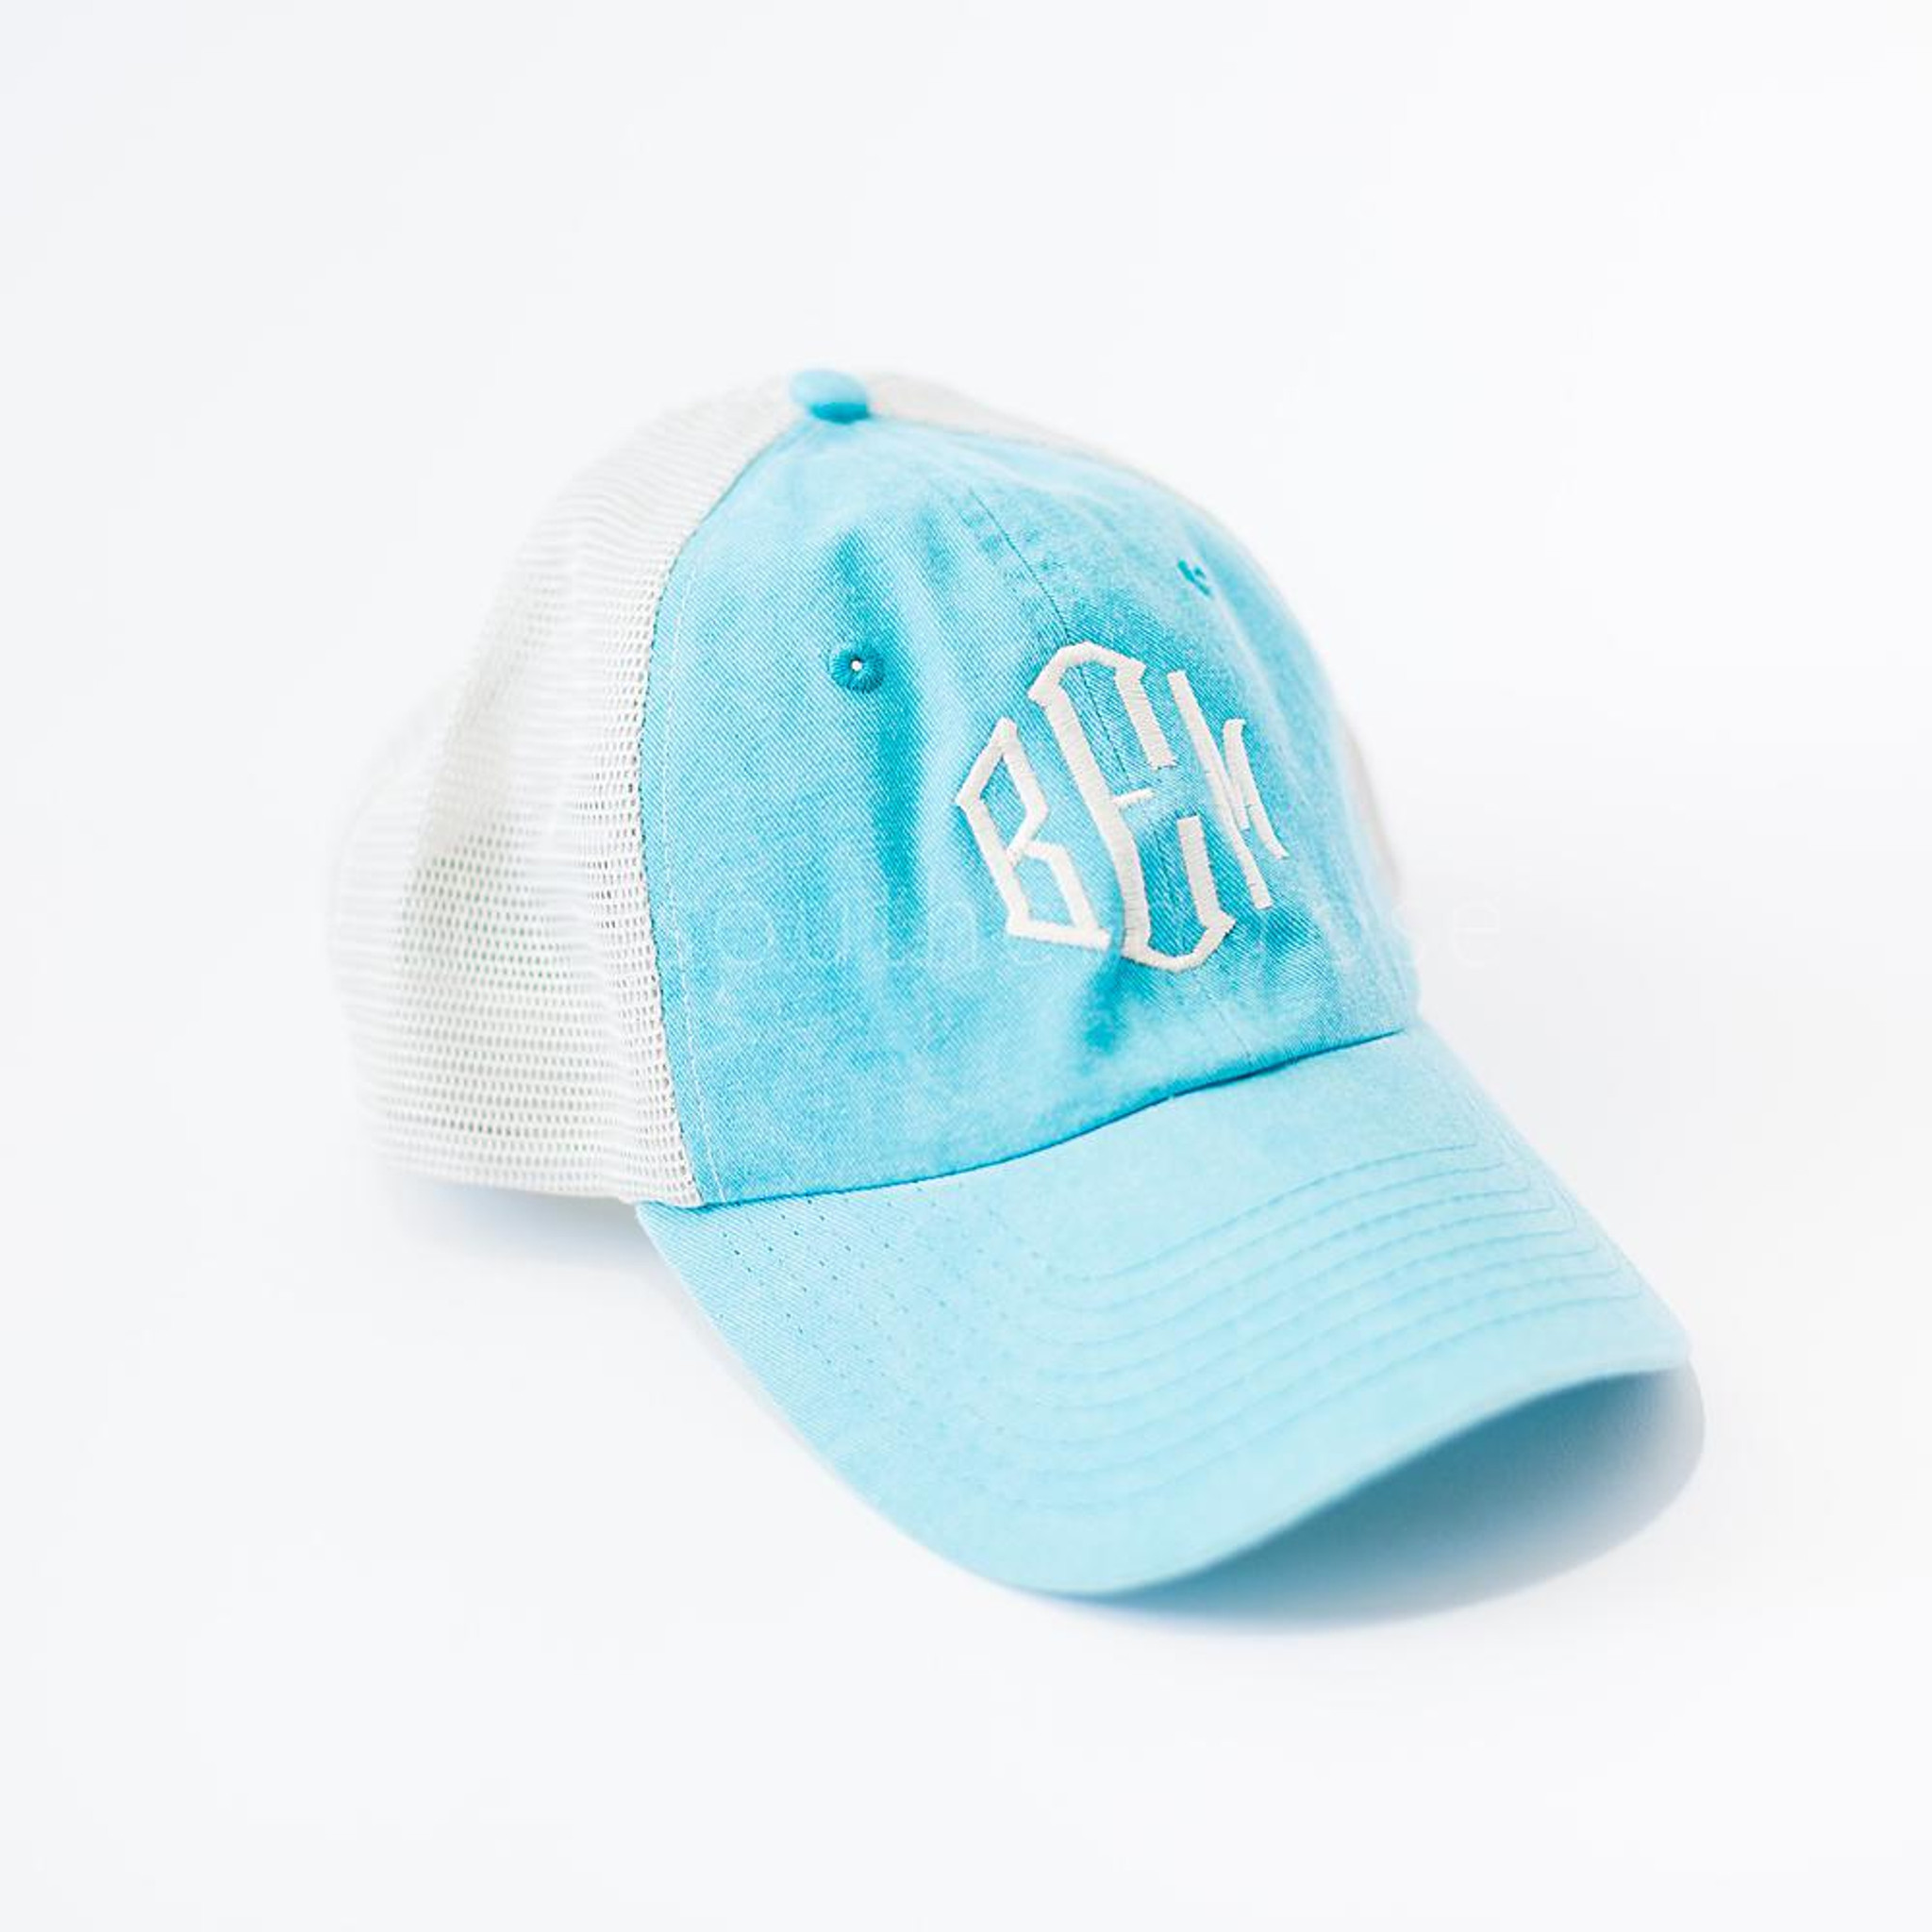 Monogrammed Trucker Hat - Blue